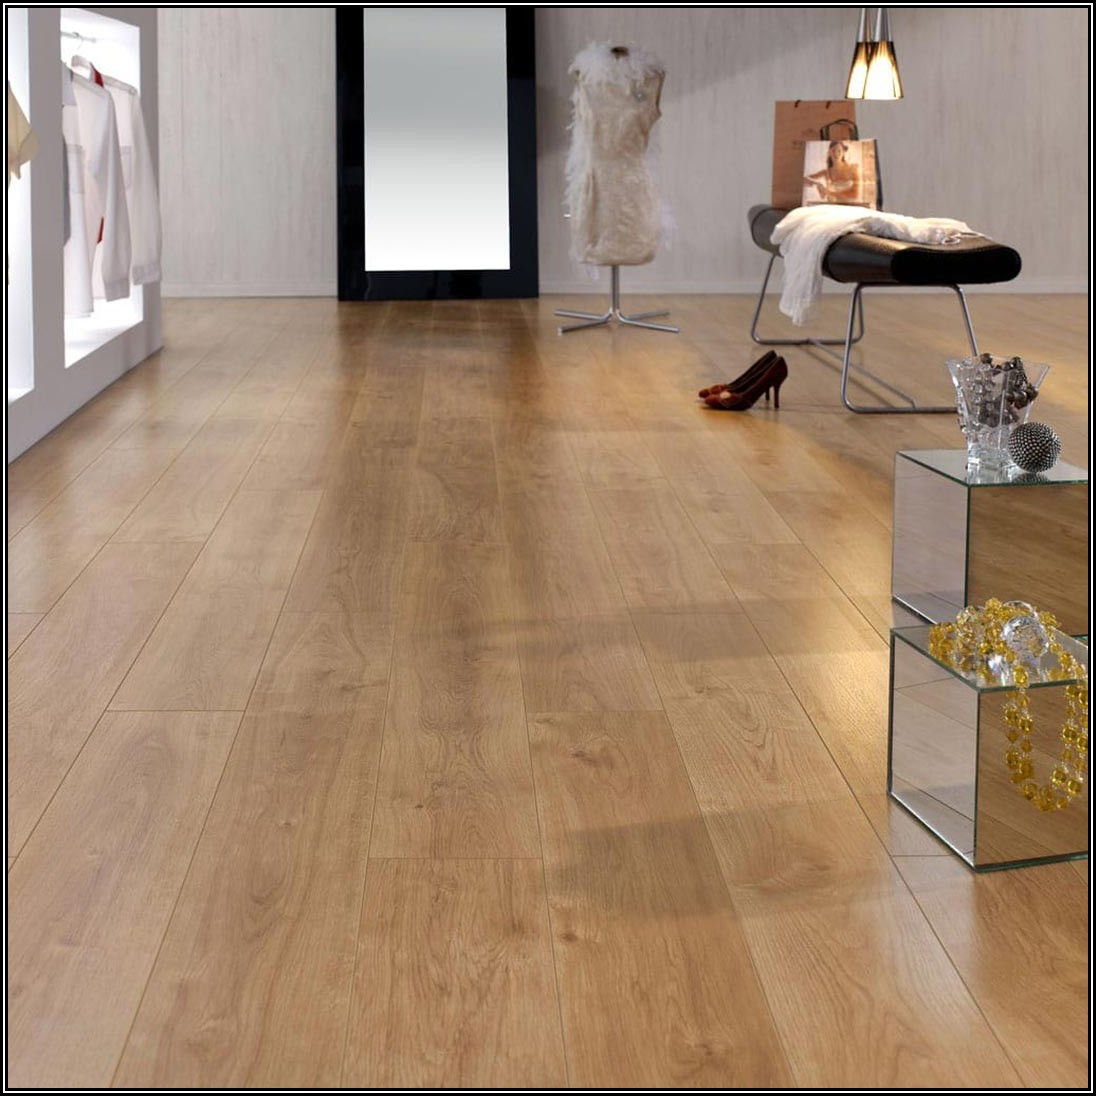 Installing Laminate Flooring In High Humidity